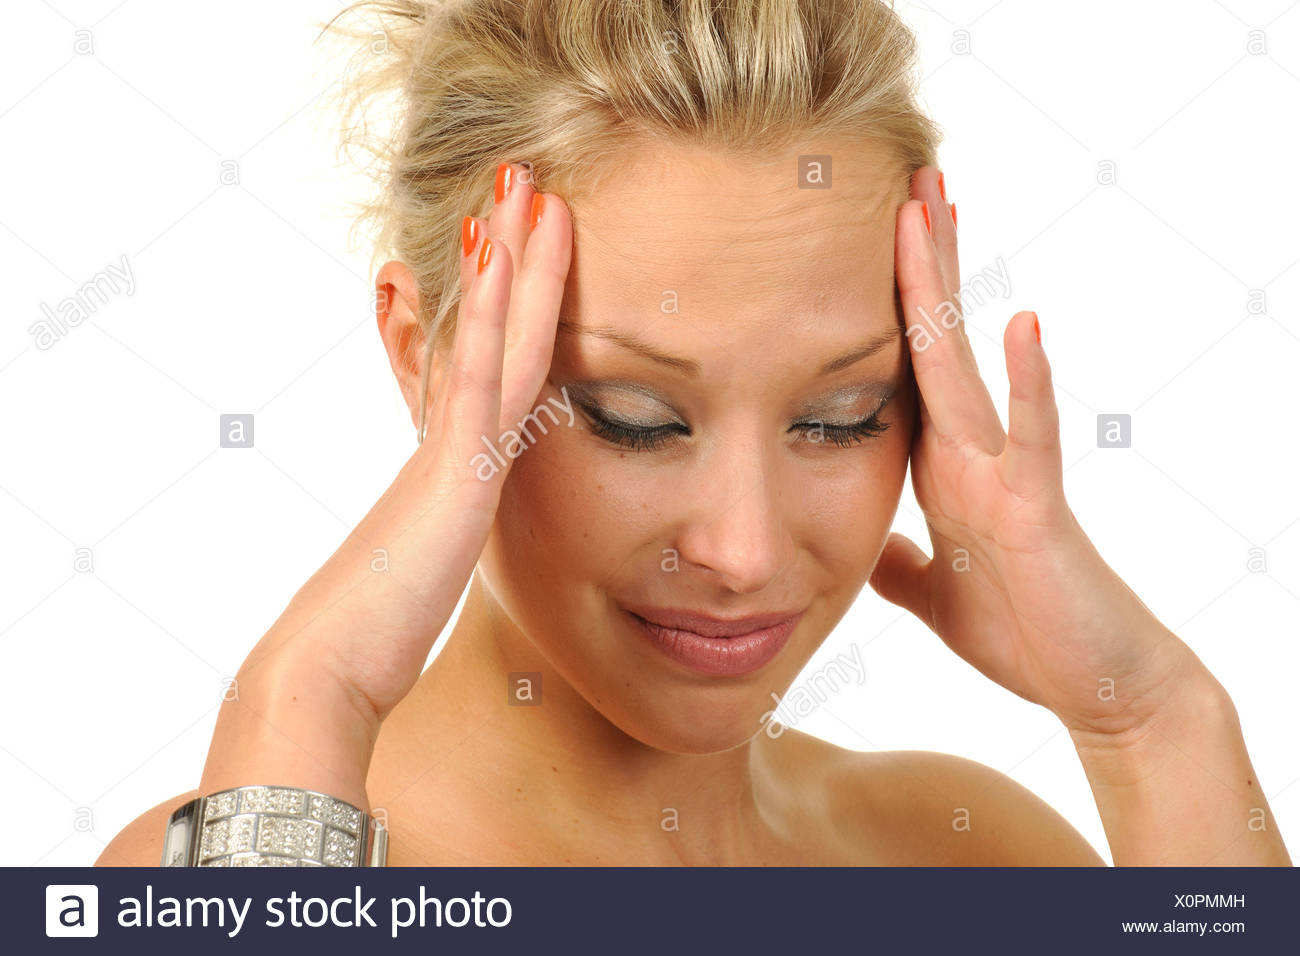 Young woman, unable to cope, stressed out, irritated, headache, portrait - Stock Image